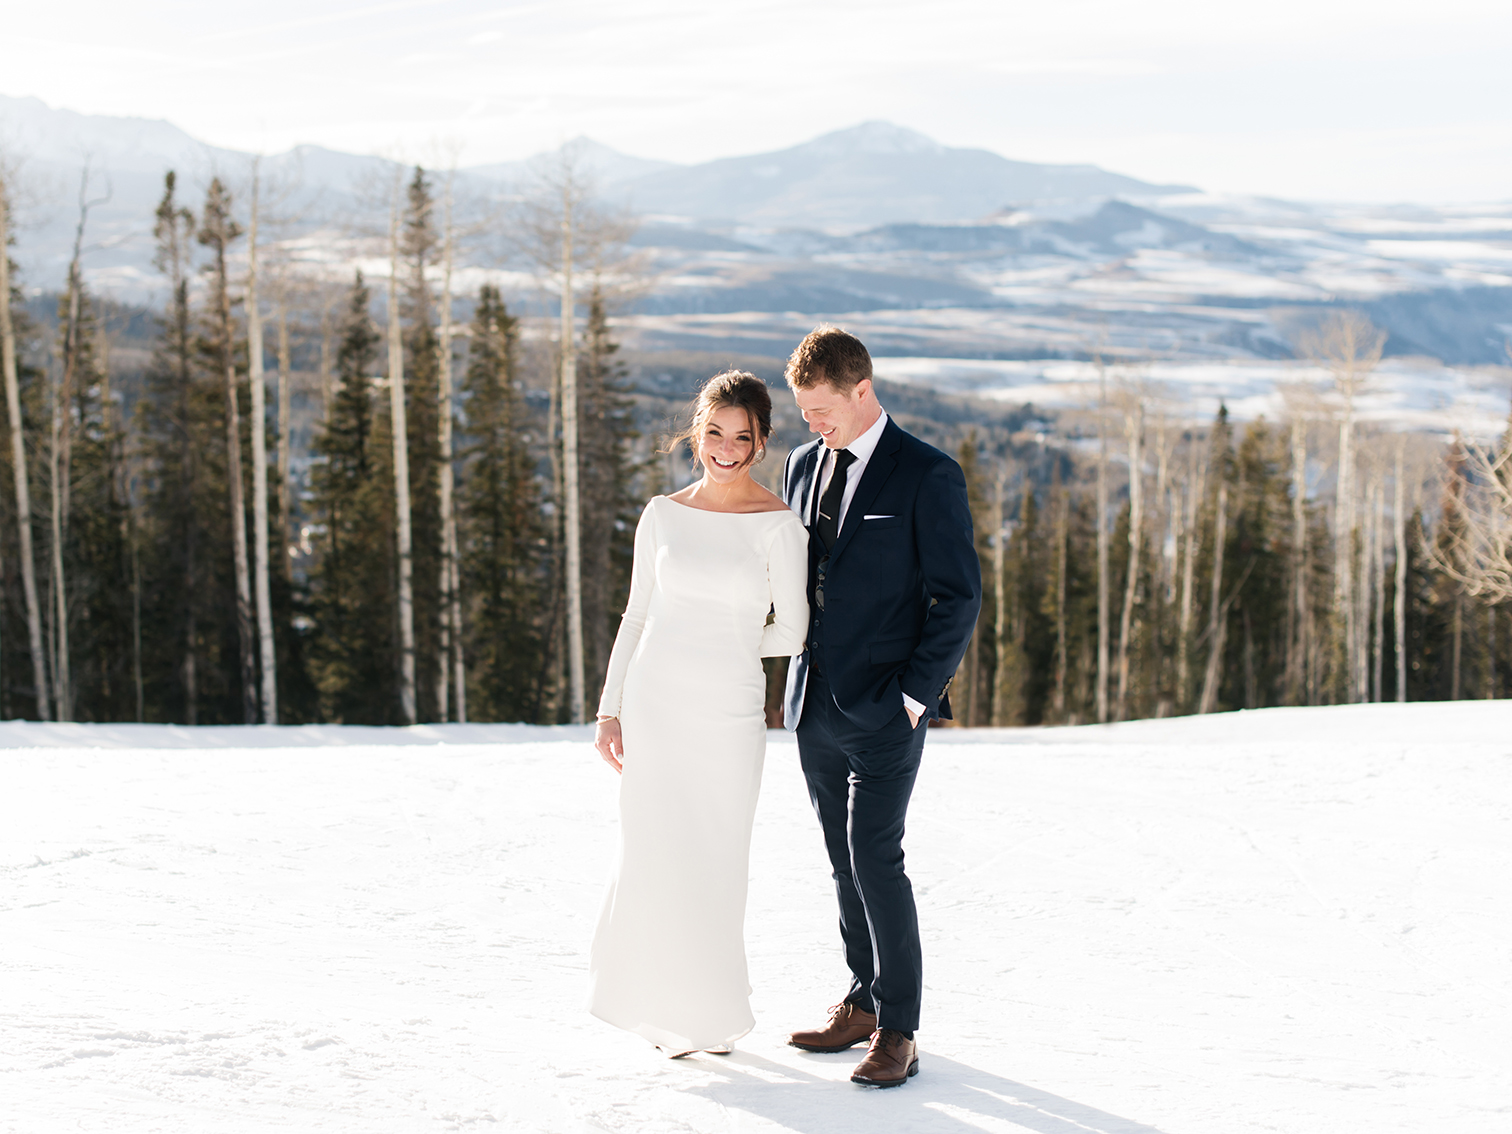 Telluride Wedding, Colorado Destination Wedding, Colorado Photographer, Colorado Wedding Photography, Winter Wedding